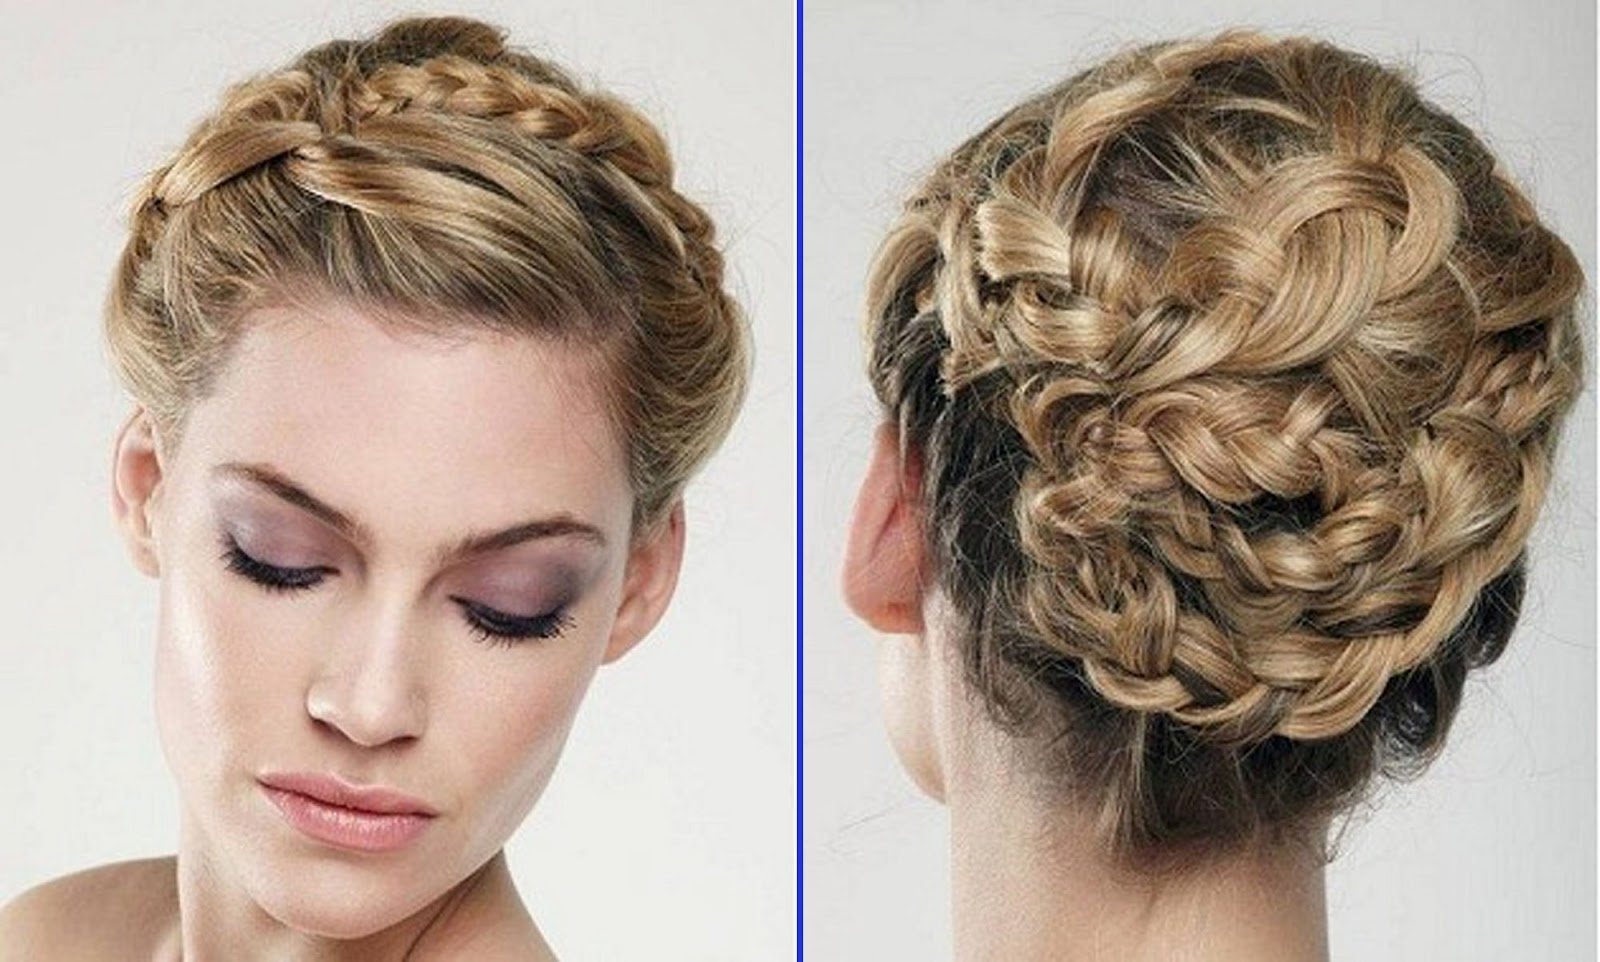 Todays Hair Styles : Updos For Wedding How To Hairstylesformens.us- Hairstyle Ideas Today